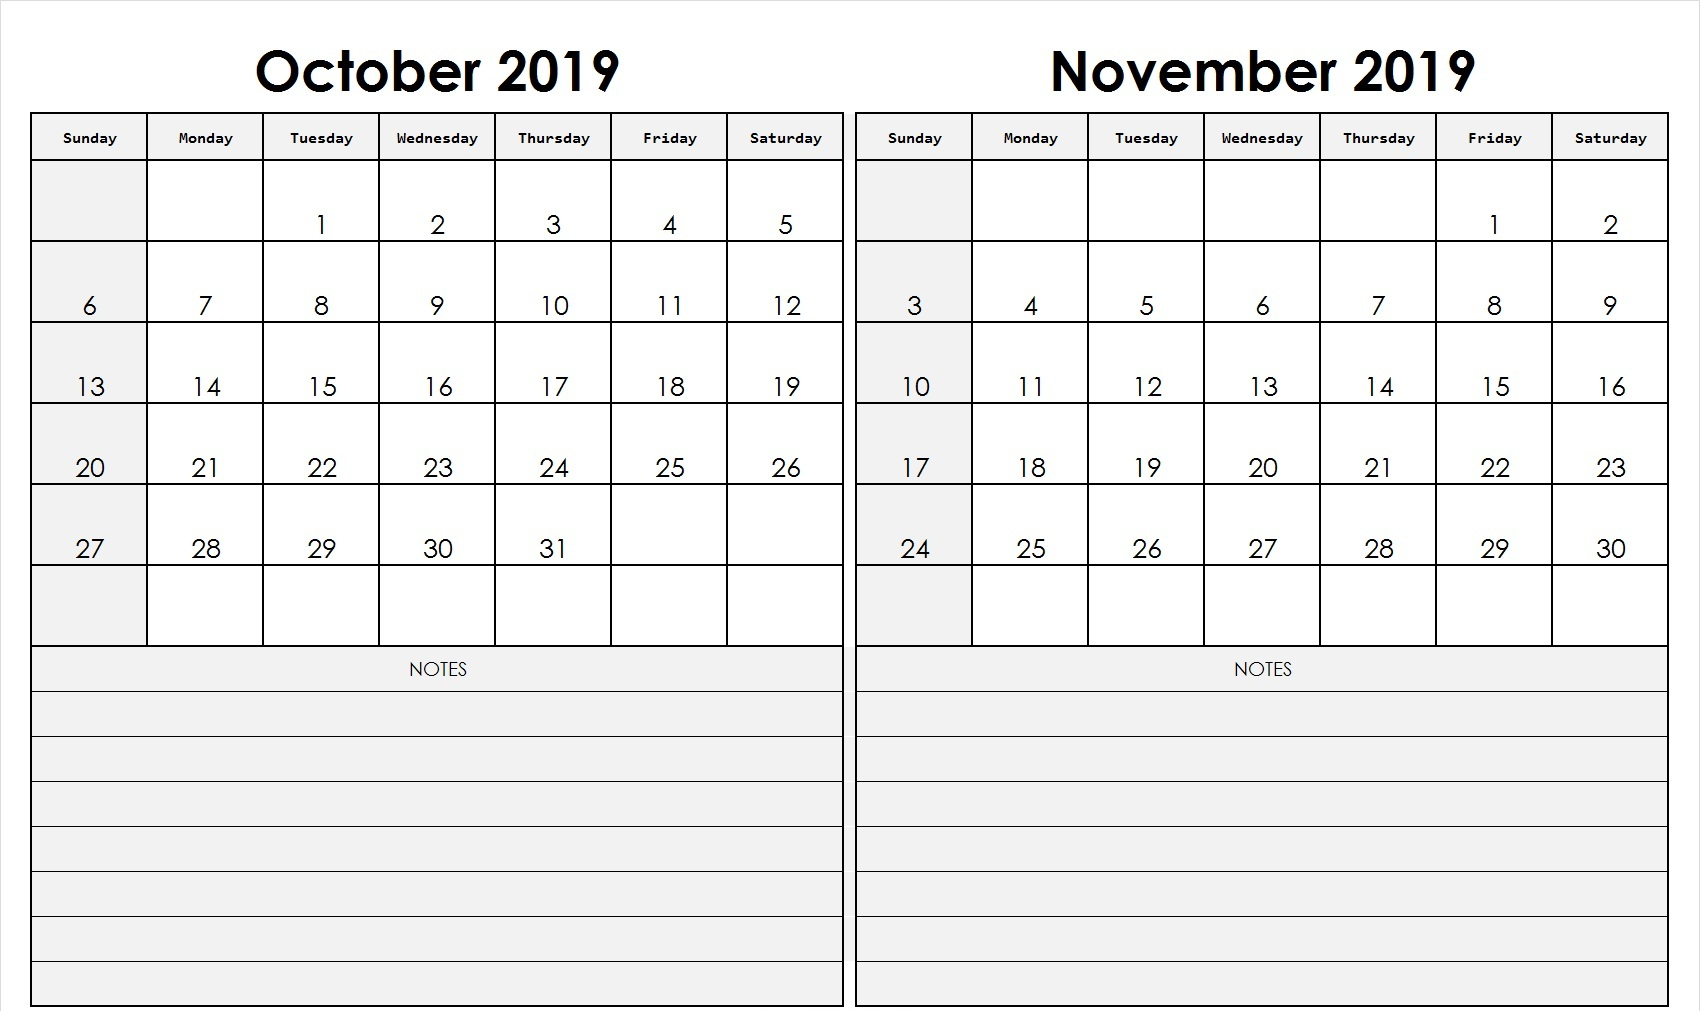 graphic relating to November and December Calendar Printable called Oct November 2019 Calendar Printable (2 Thirty day period Templates